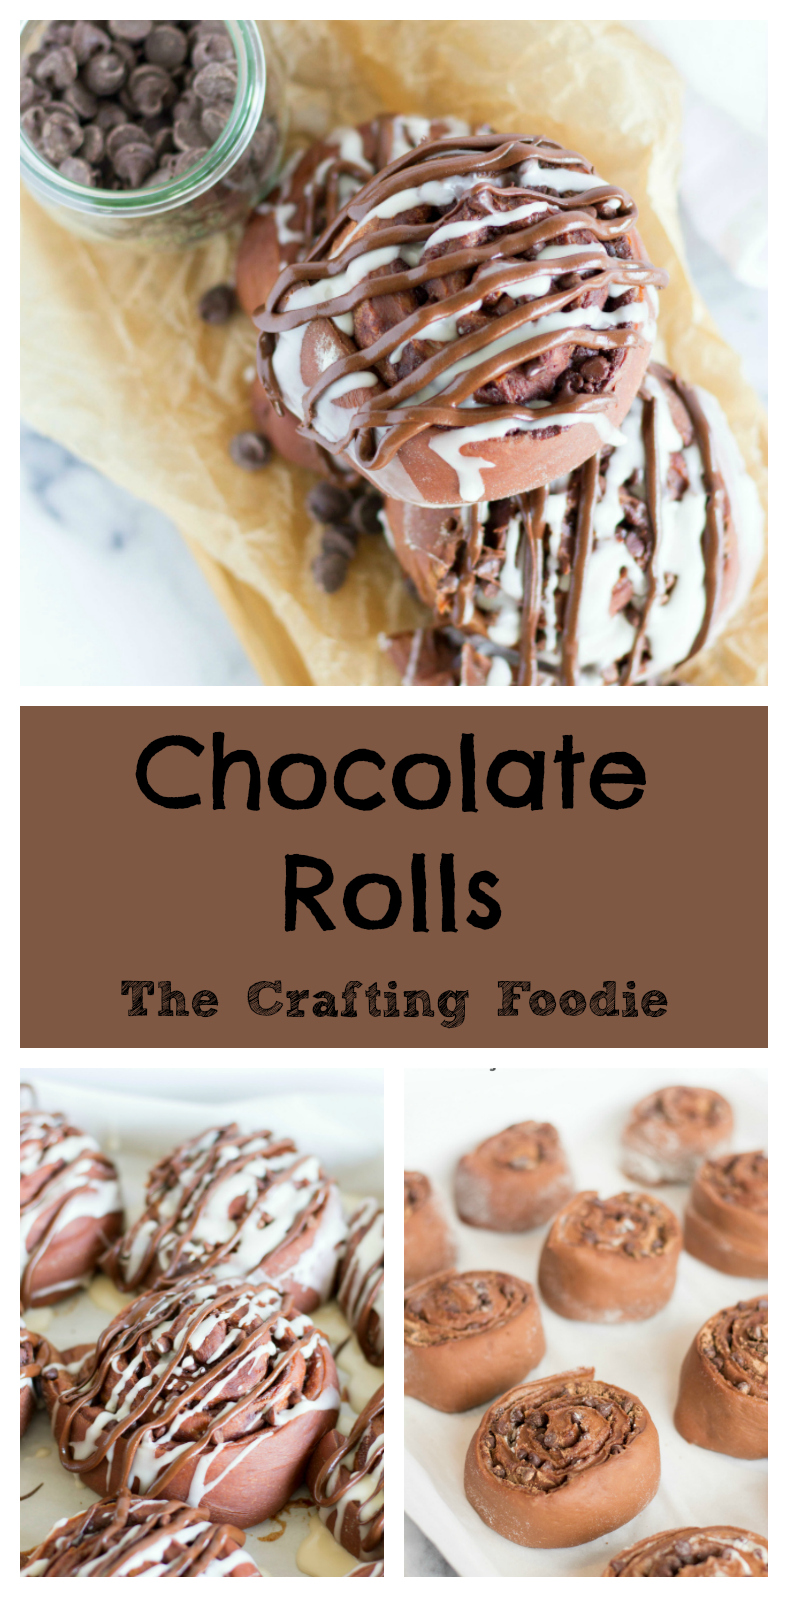 Chocolate Rolls The Crafting Foodie